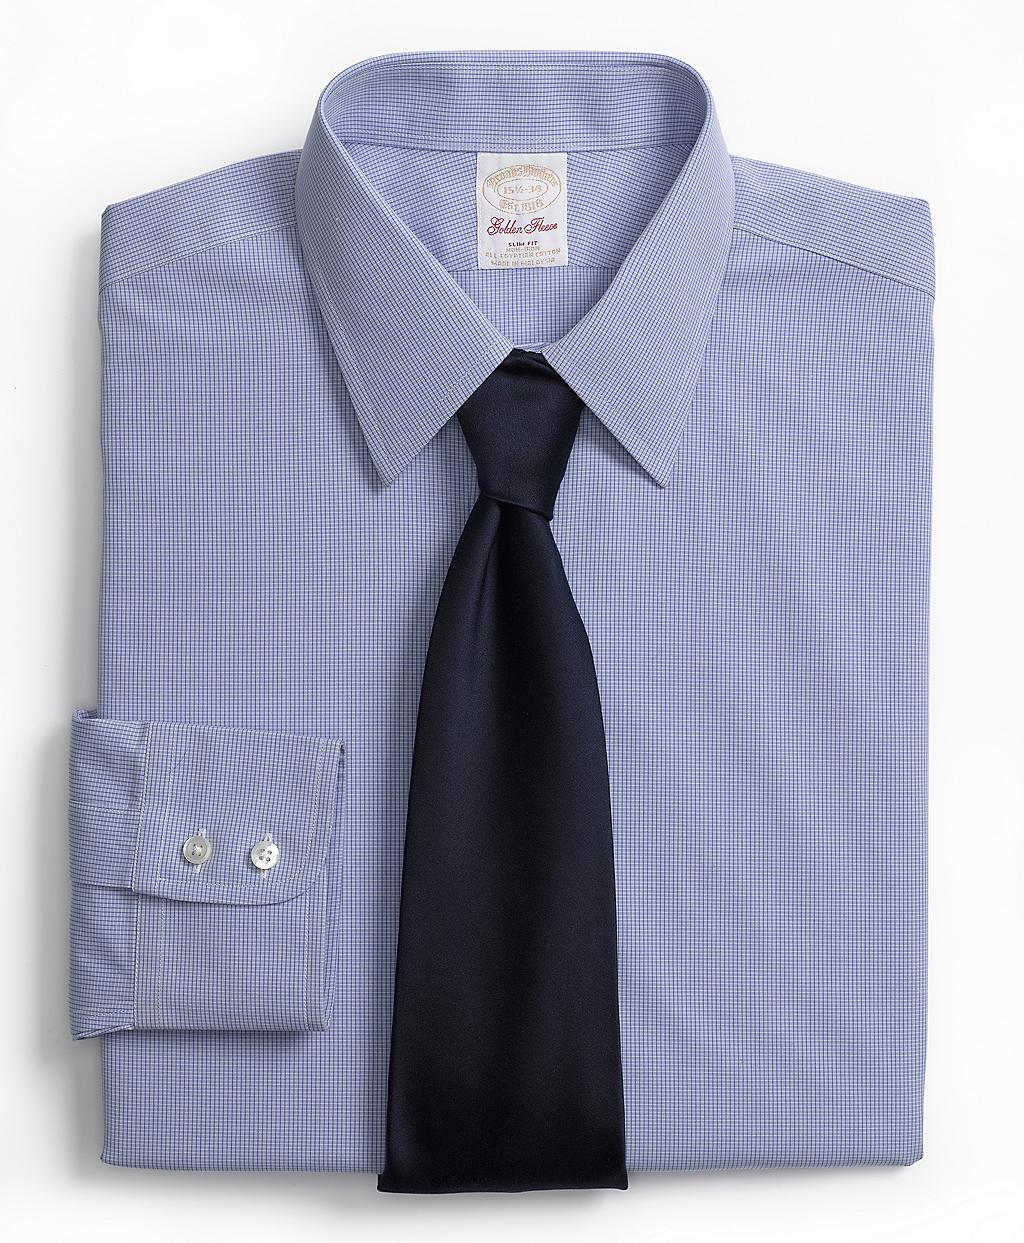 Brooks brothers golden fleece non iron regent fit mini for Brooks brothers non iron shirts review